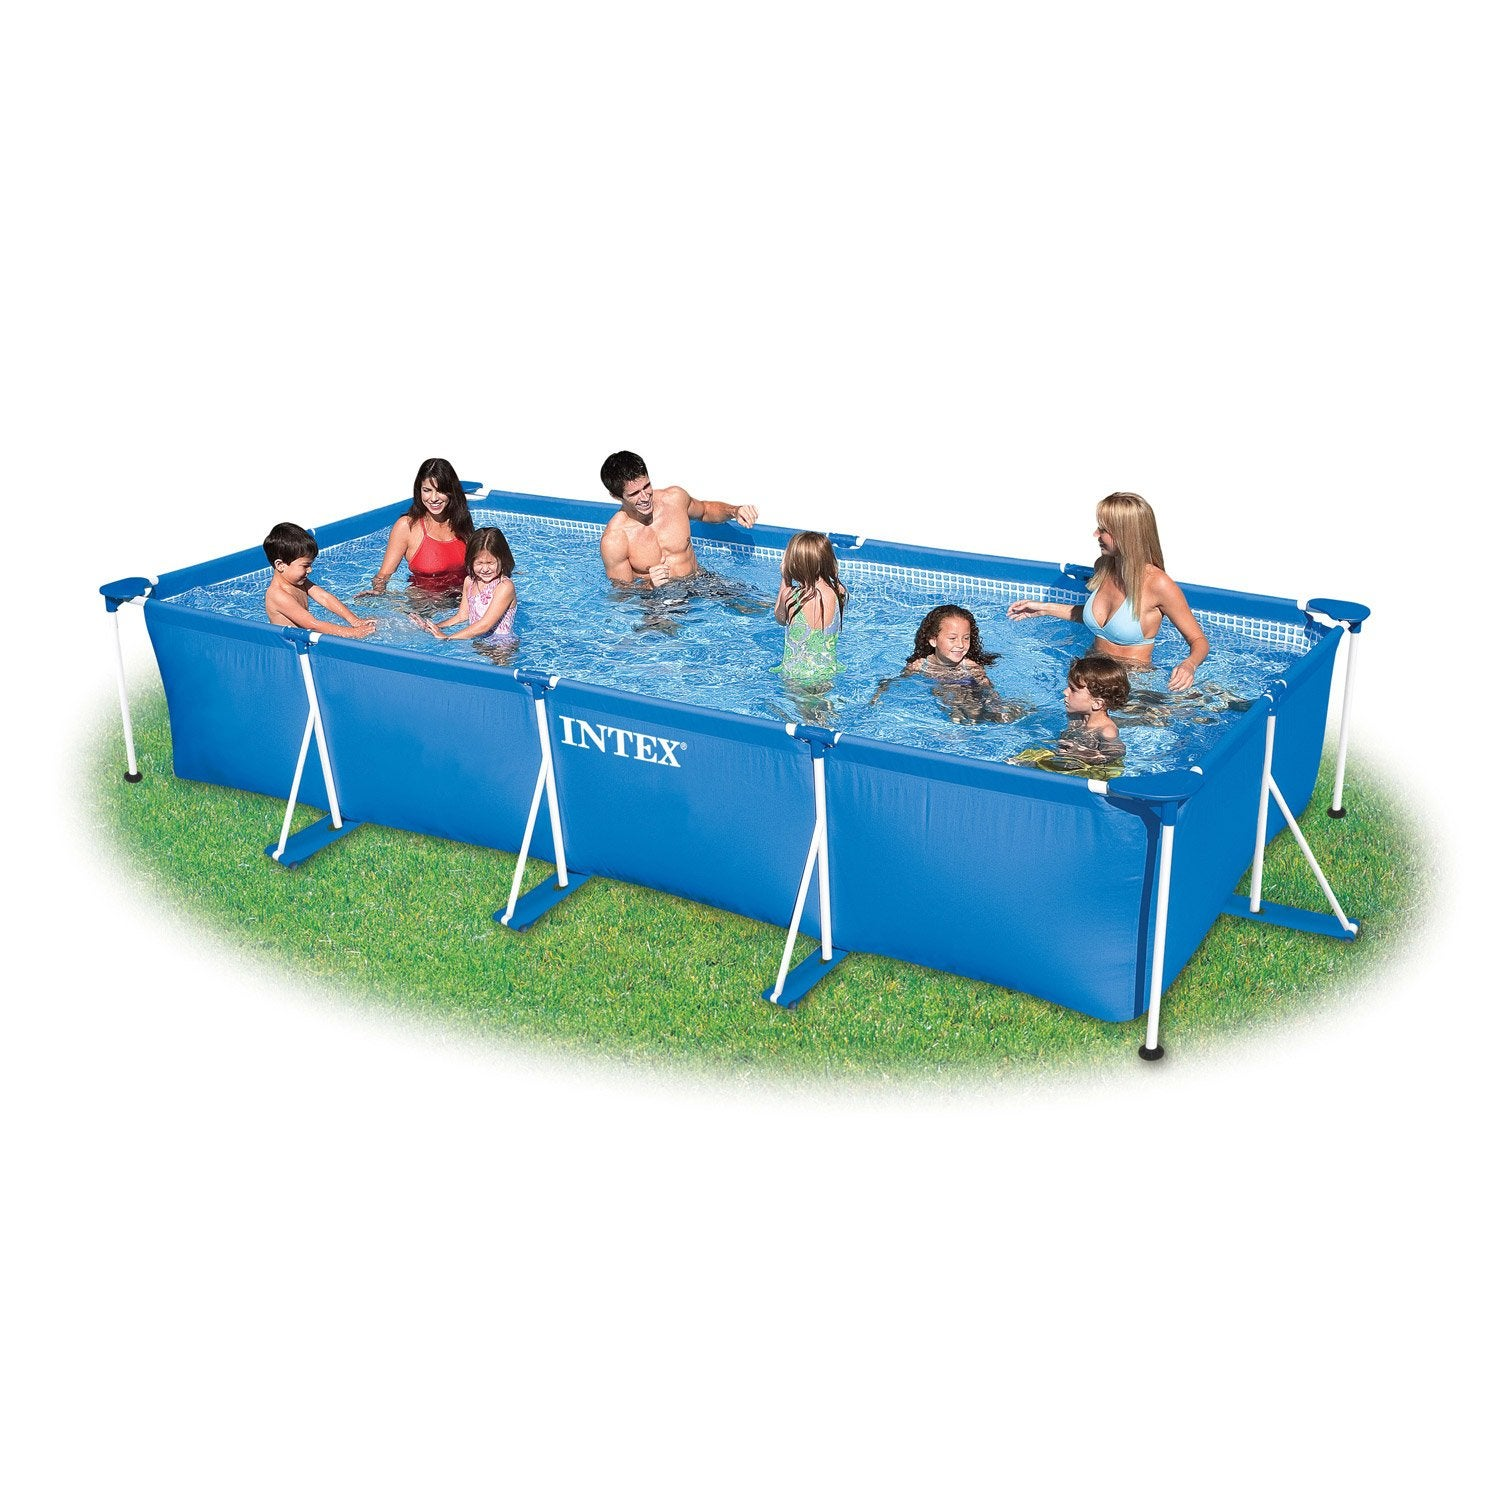 Piscine hors sol autoportante tubulaire intex l x l for Piscine hors sol hauteur 1m60